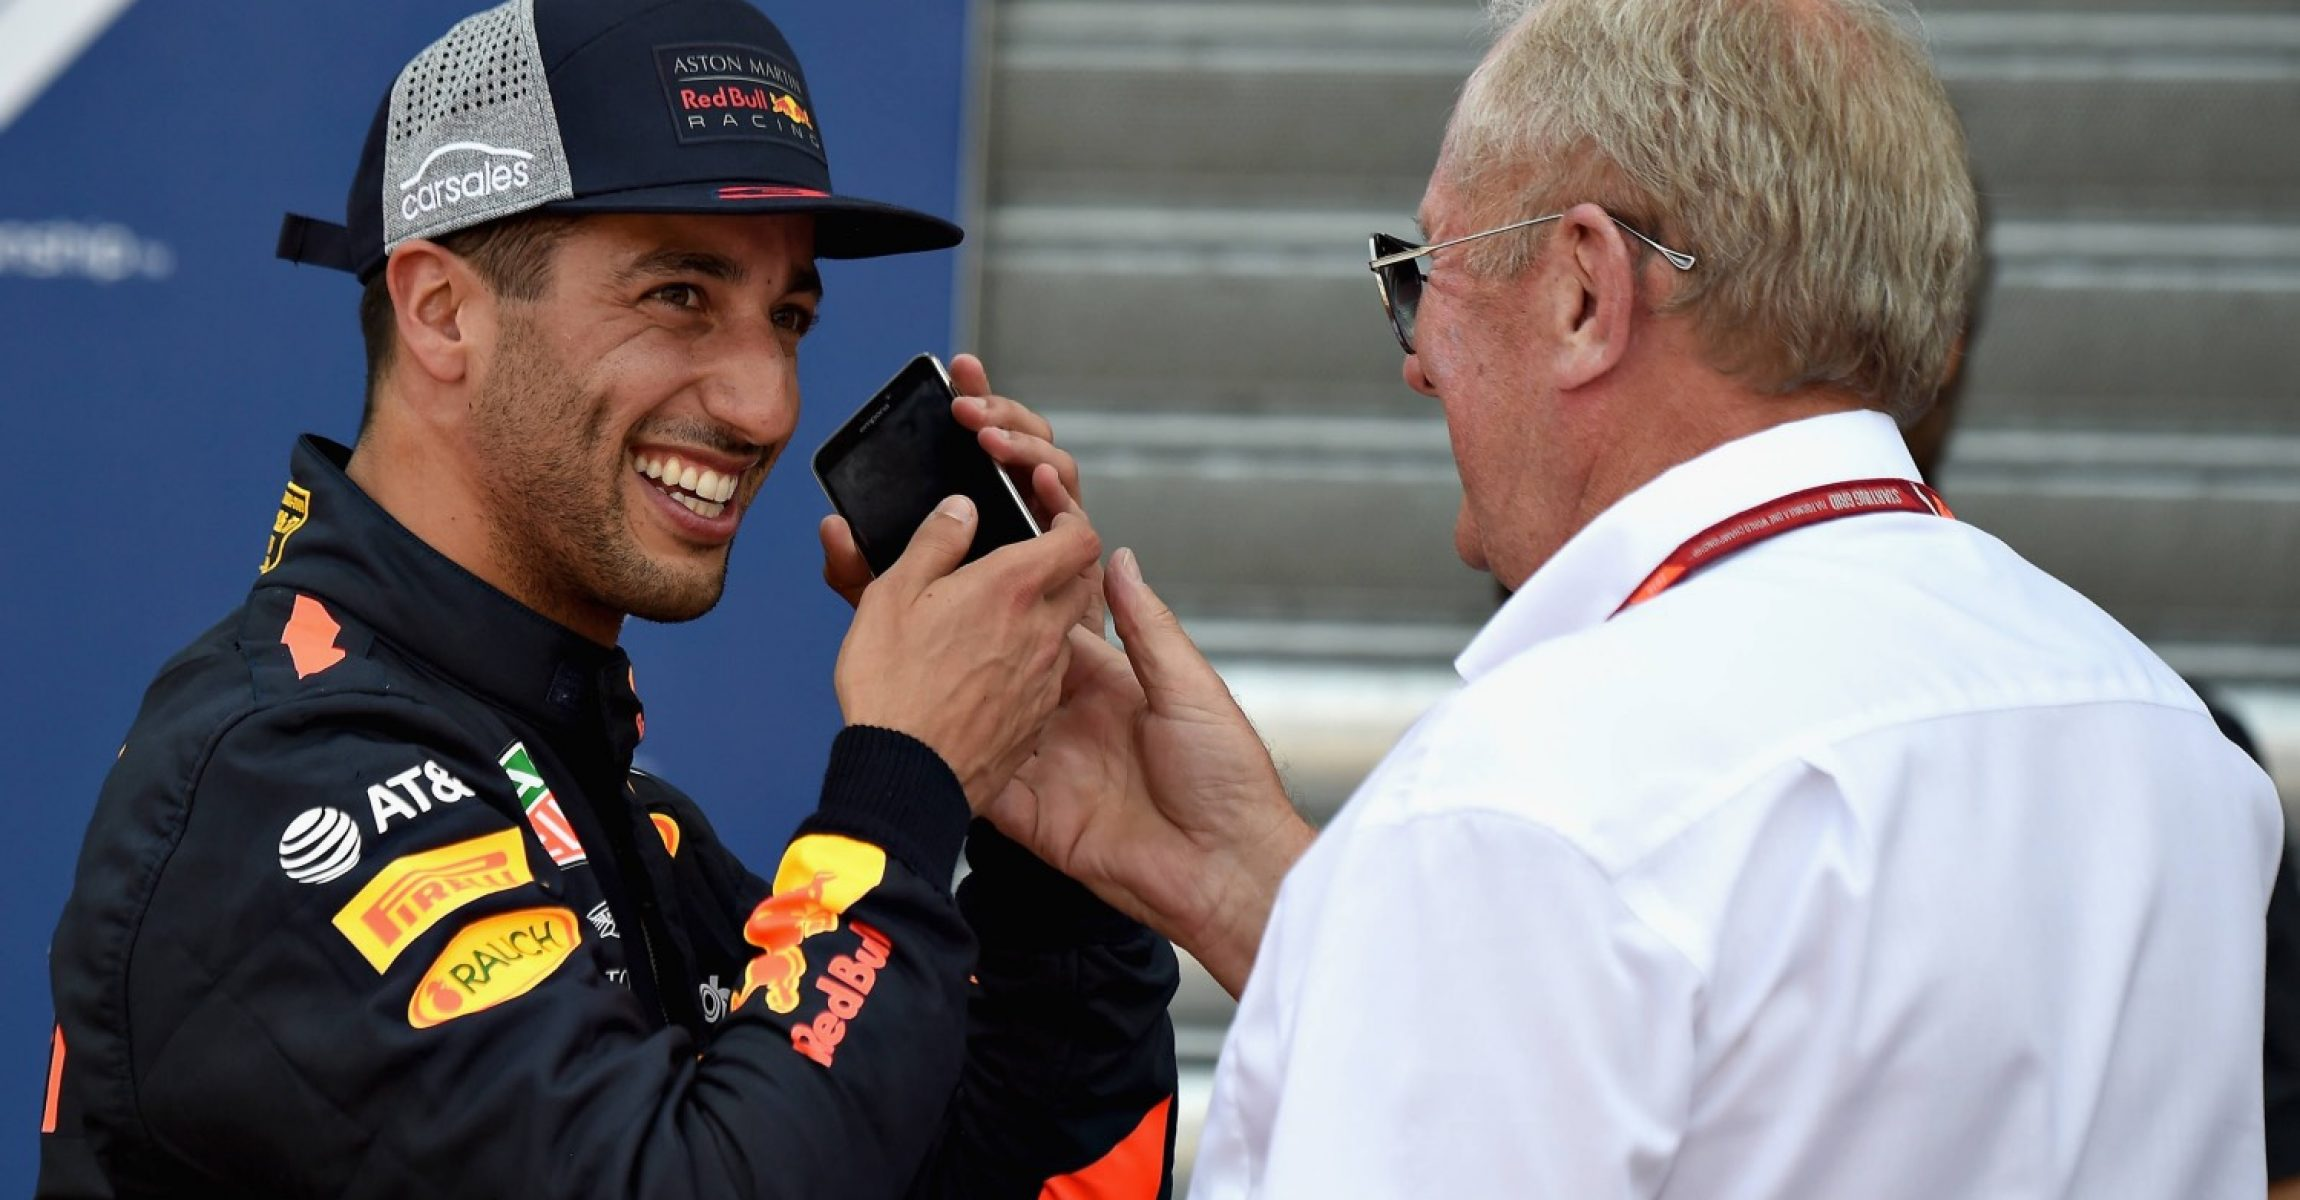 MONTE-CARLO, MONACO - MAY 26:  Pole position qualifier Daniel Ricciardo of Australia and Red Bull Racing talks on the phone with Red Bull Racing Team Consultant Dr Helmut Marko in parc ferme during qualifying for the Monaco Formula One Grand Prix at Circuit de Monaco on May 26, 2018 in Monte-Carlo, Monaco.  (Photo by Getty Images/Getty Images) // Getty Images / Red Bull Content Pool  // AP-1VSHRQHMW1W11 // Usage for editorial use only // Please go to www.redbullcontentpool.com for further information. //